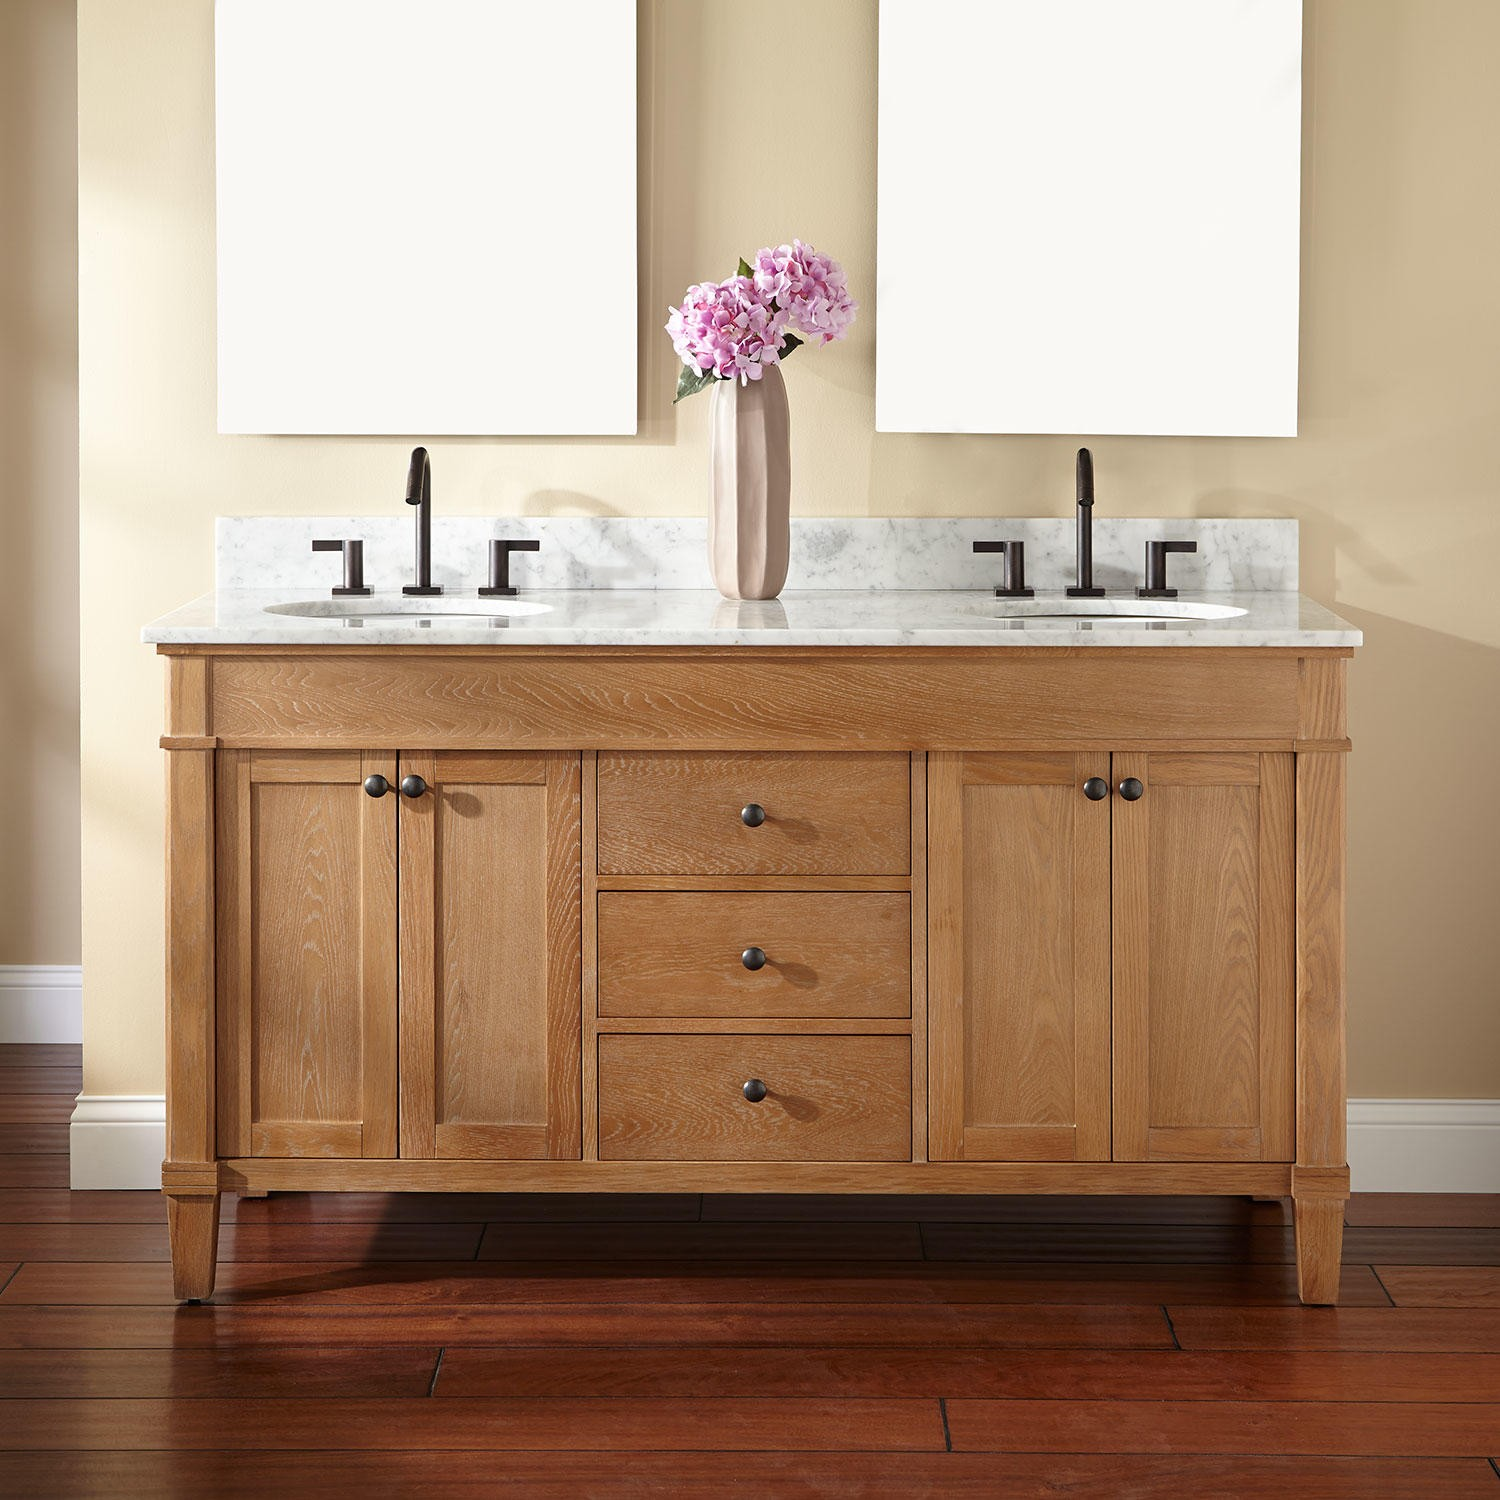 392750-undermount-bathroom-vanity.jpg